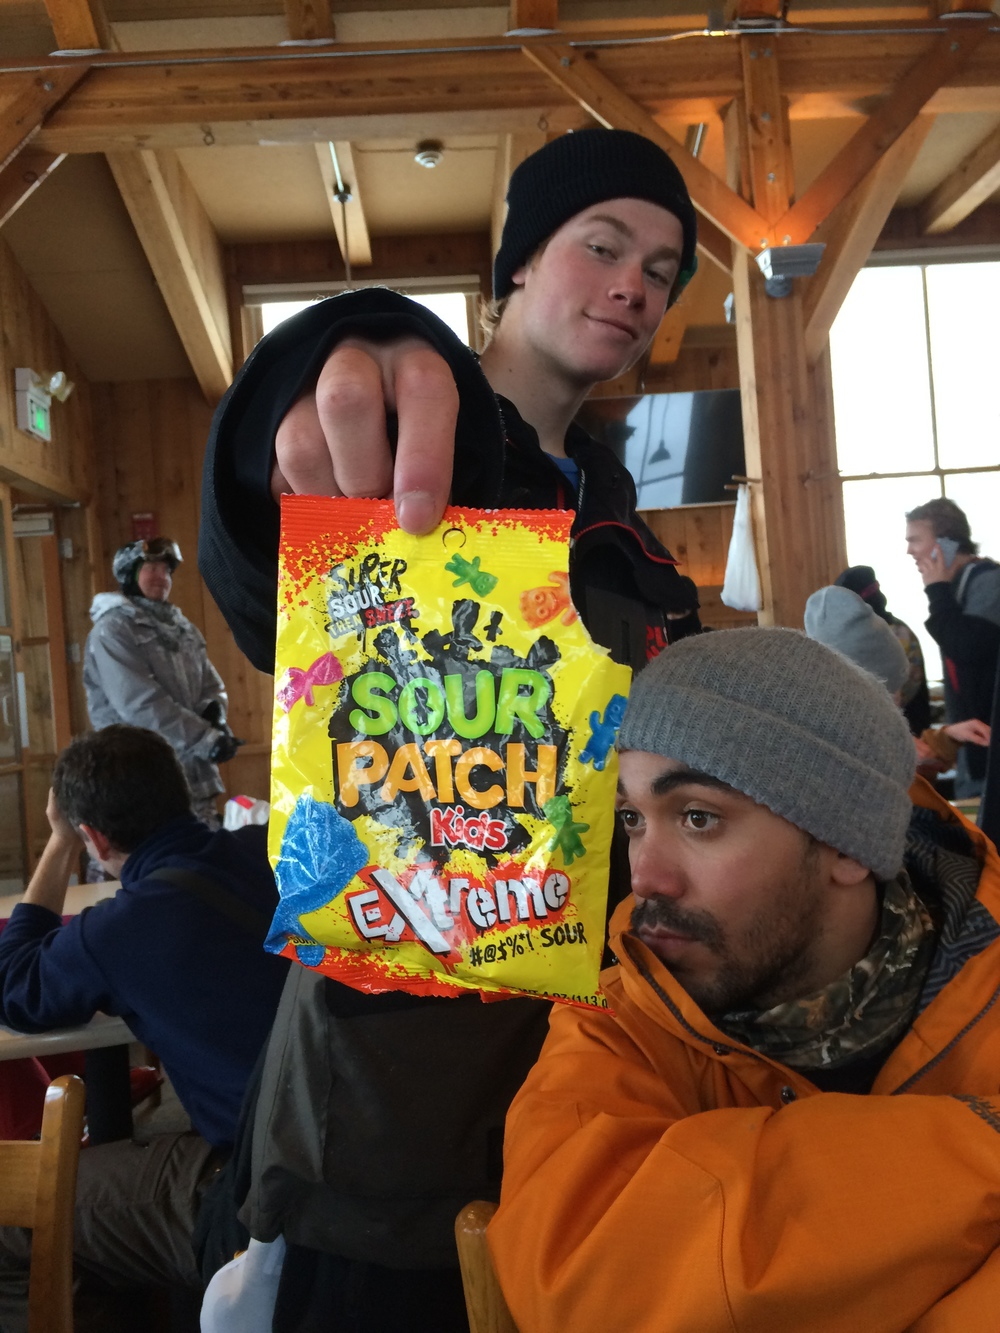 Sour Patch chilling in the Aspen lodge. Photo by: Robby Franco